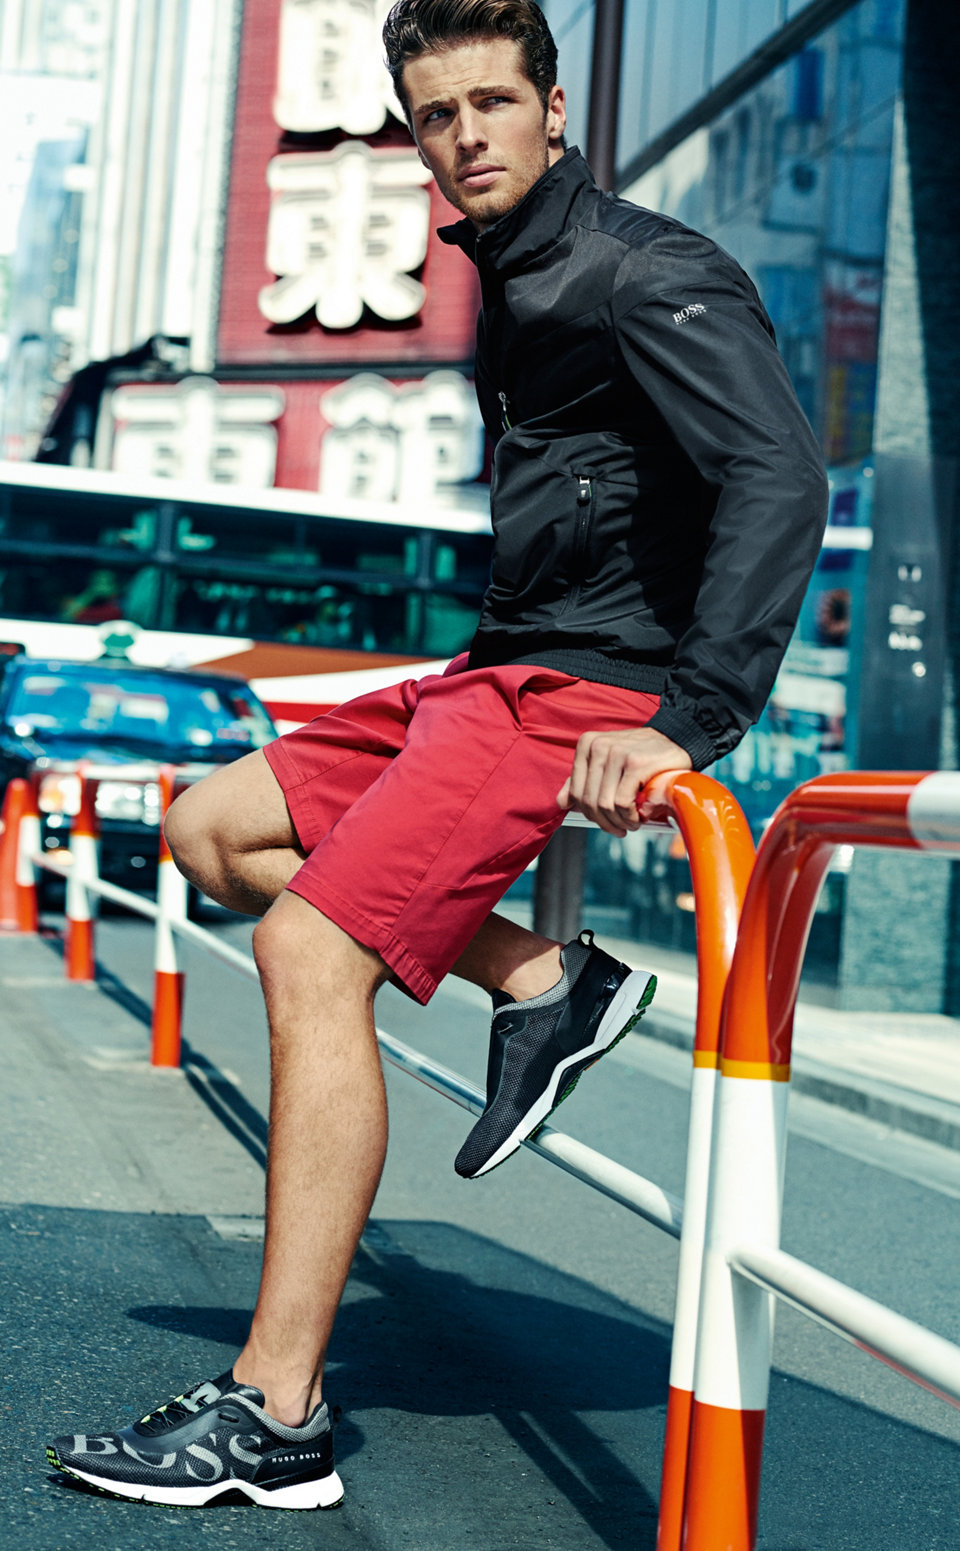 Black outerwear and red shorts byBOSSGreen